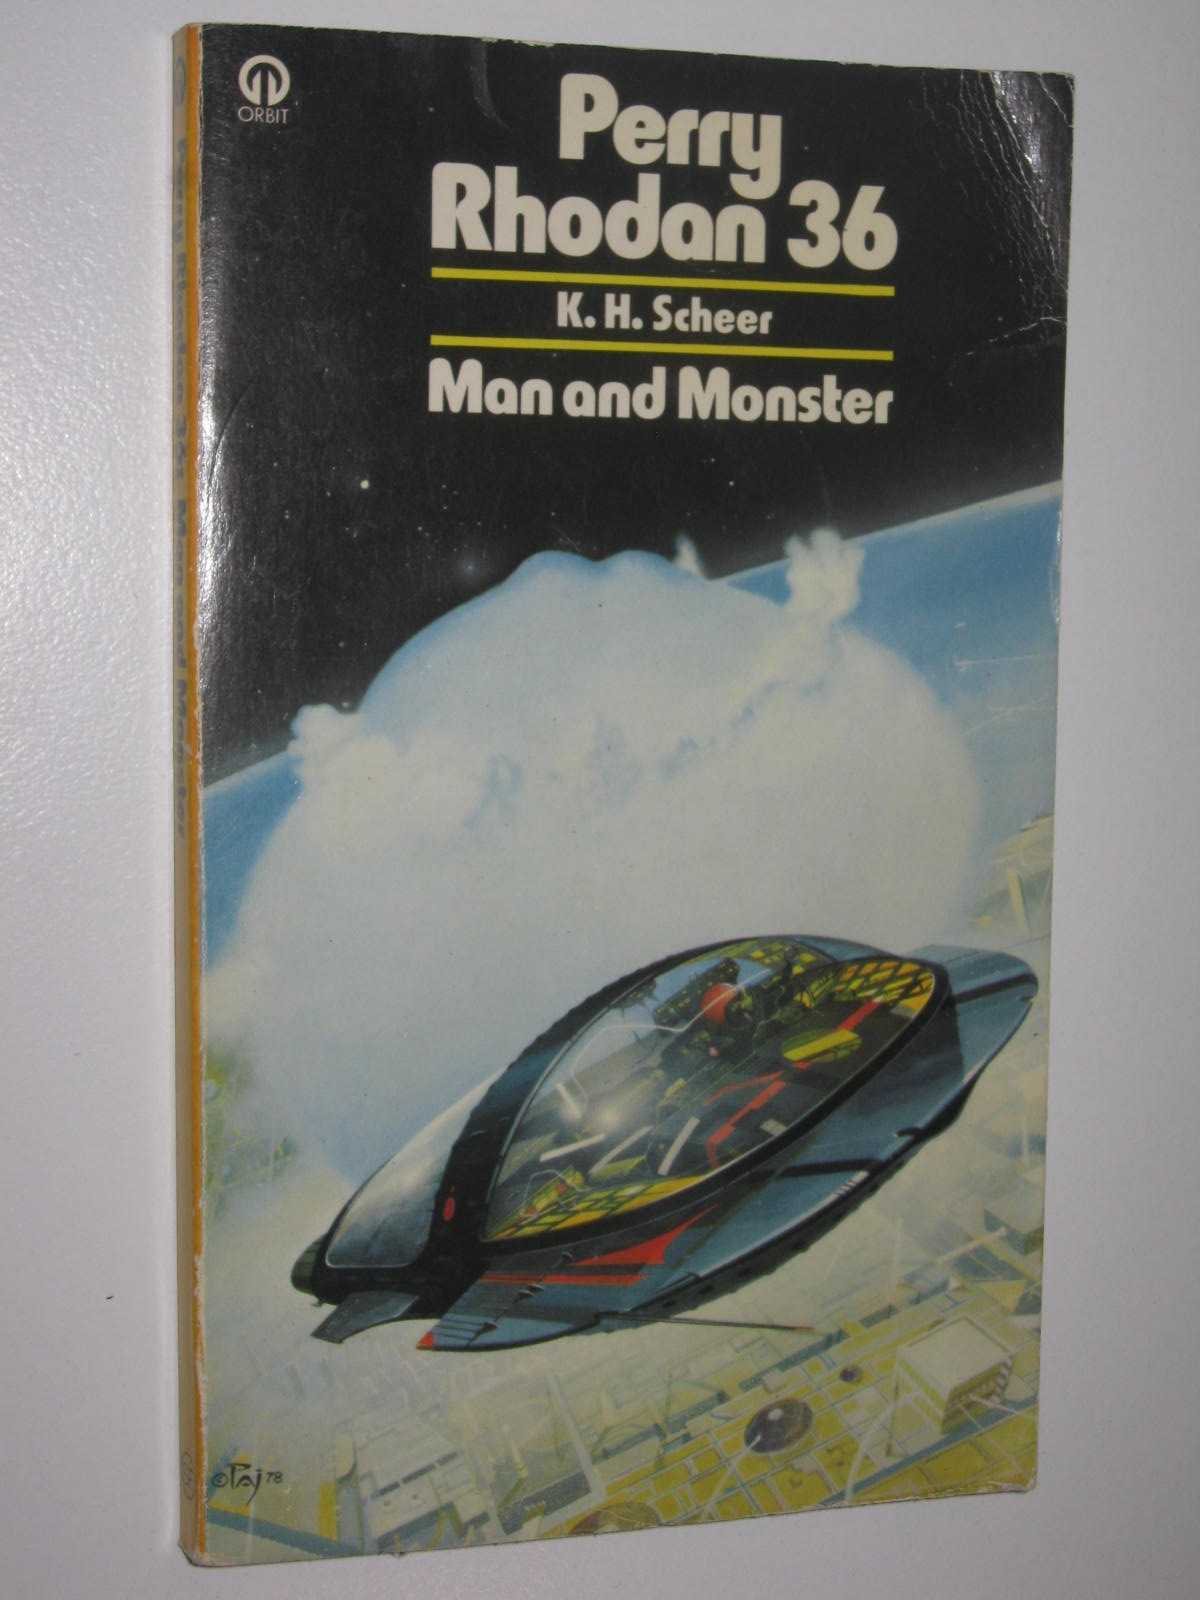 Image for Man and Monster - Perry Rhodan Series #36